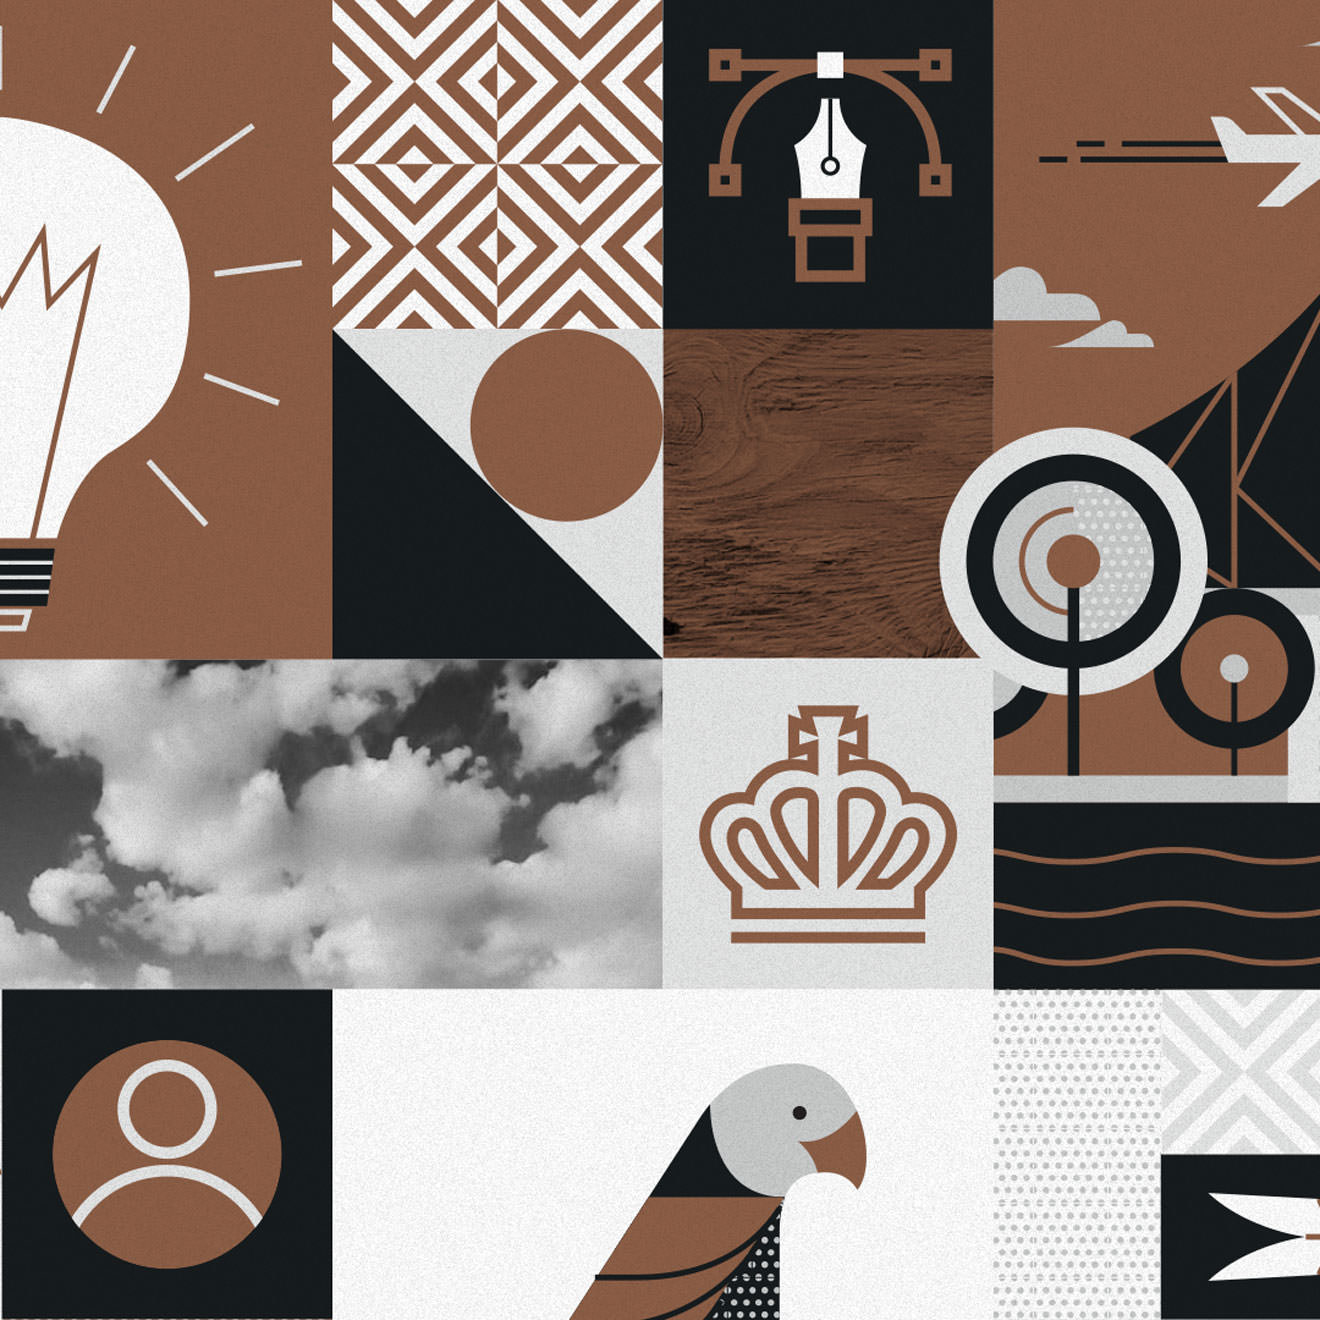 Brown, grey and white geometric illustration featuring a crown, a bird, a plane